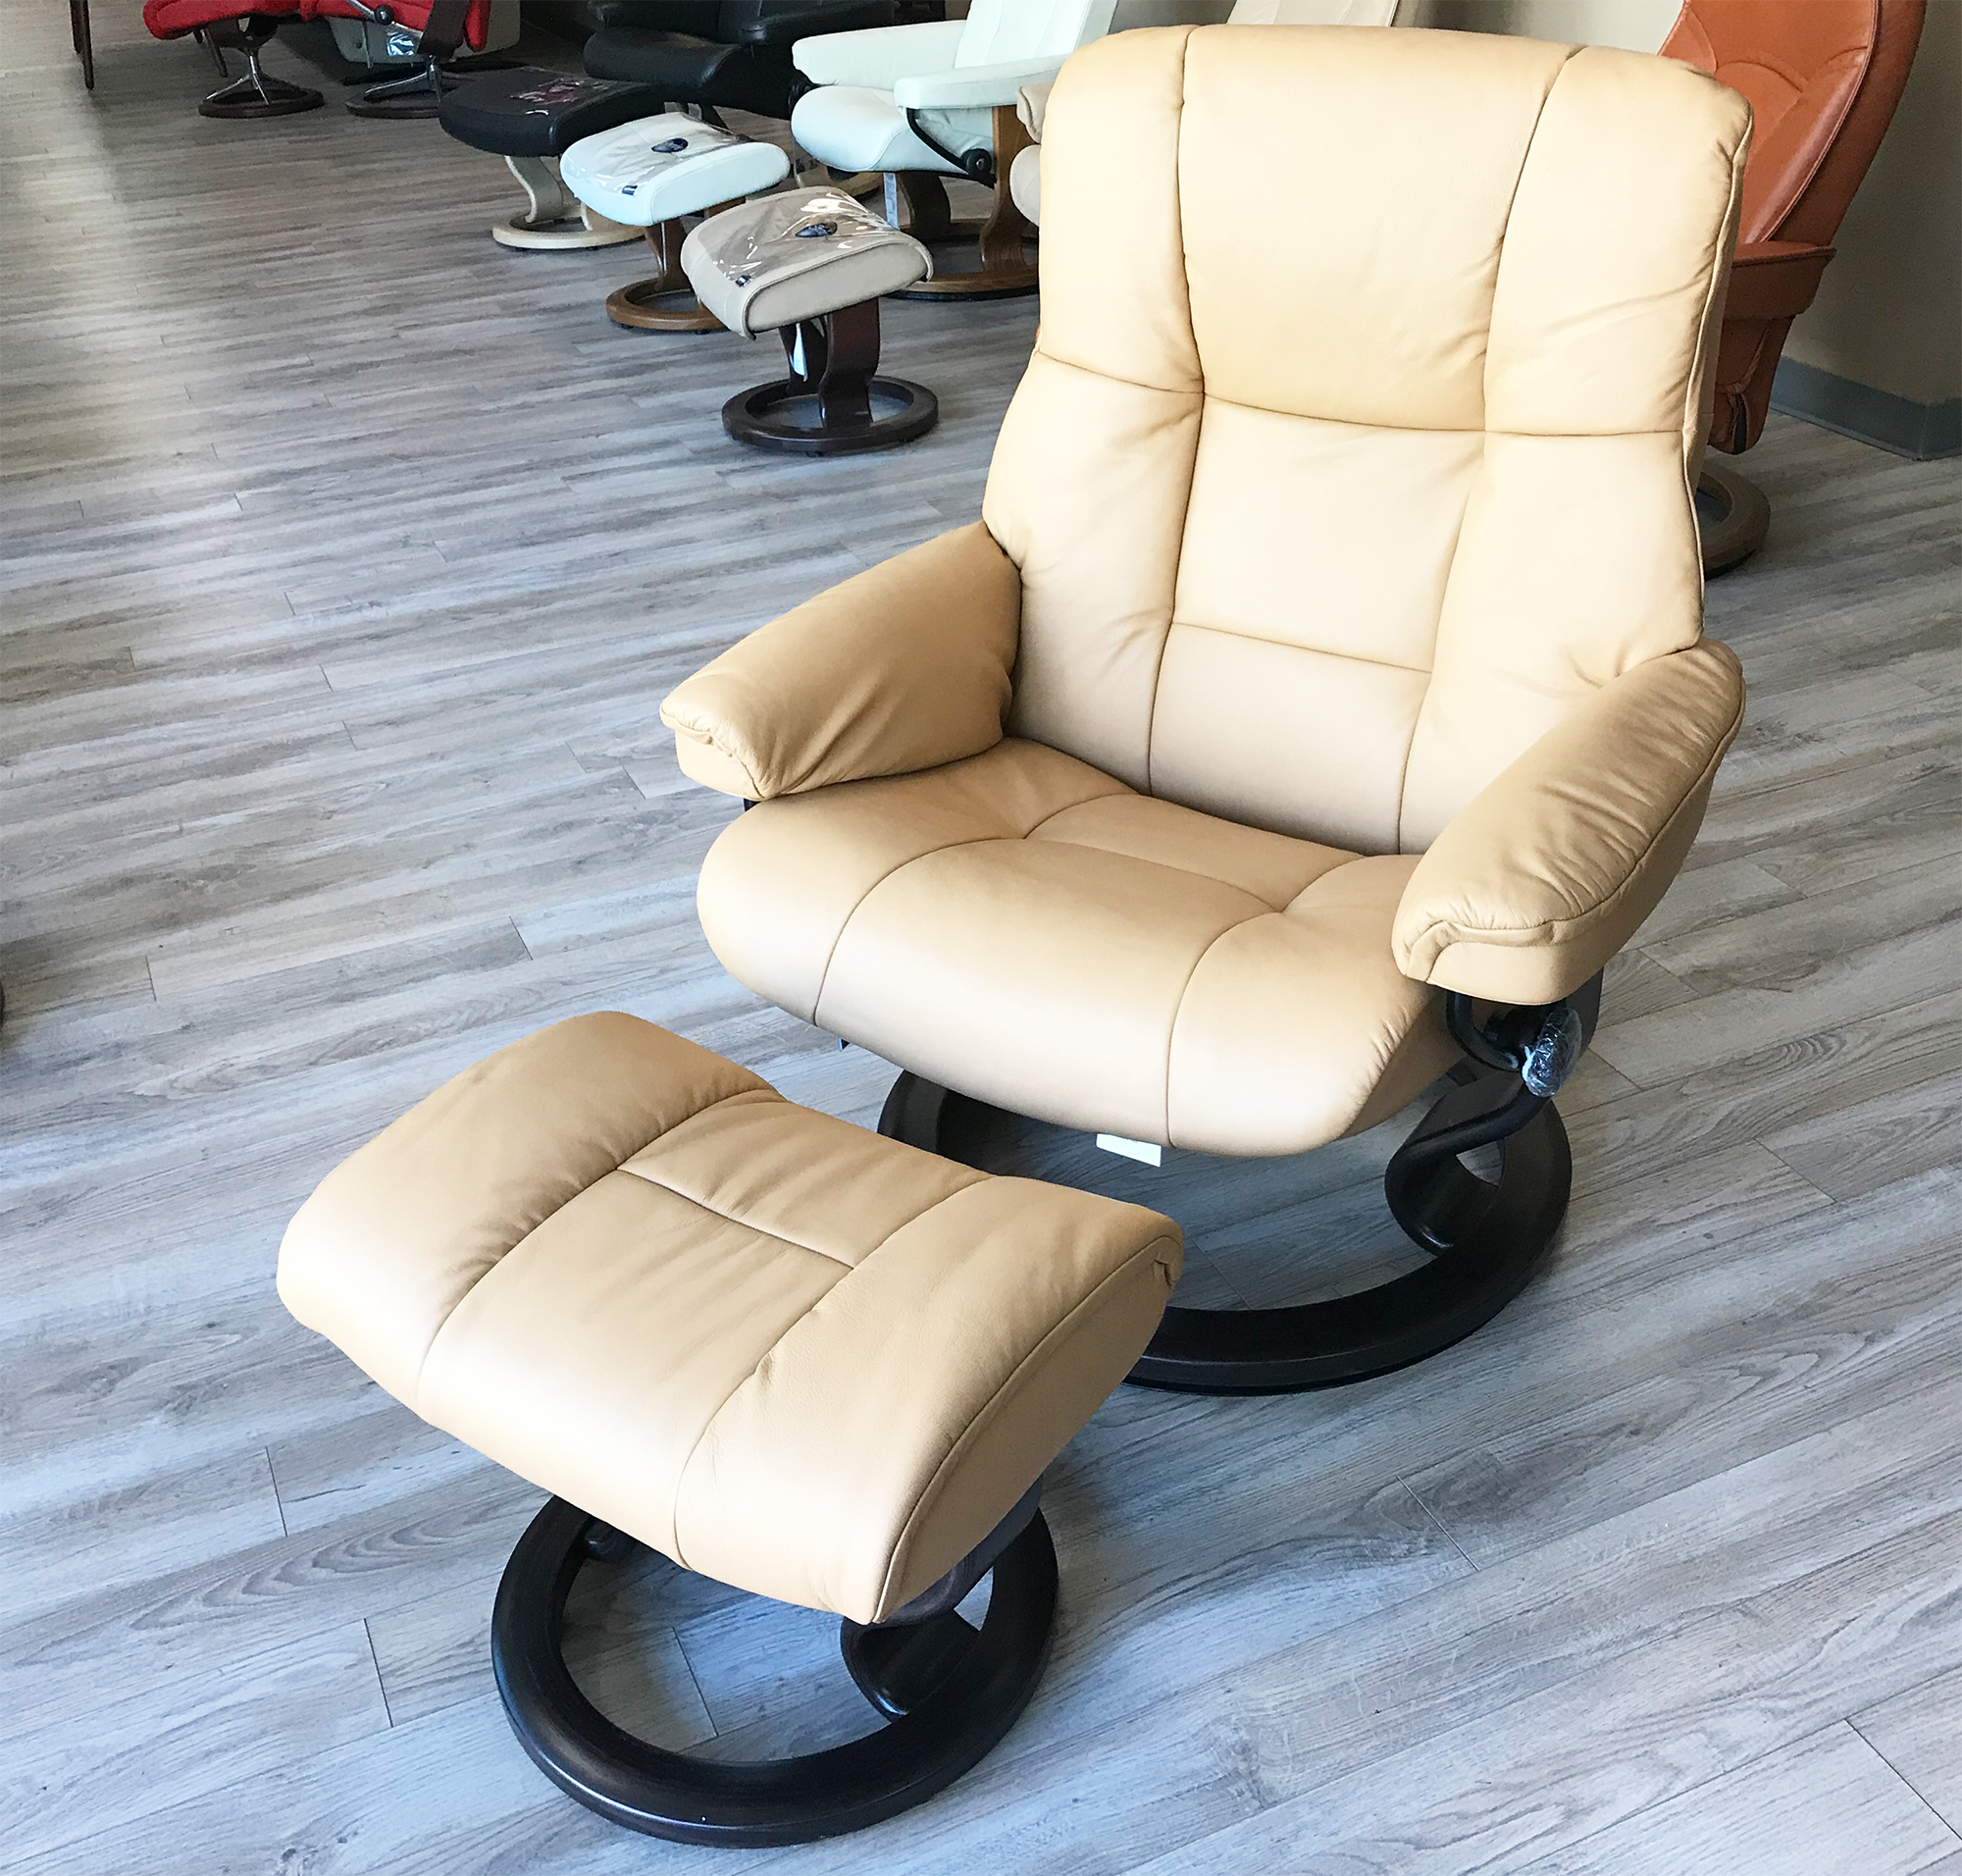 Enjoyable Stressless Mayfair Paloma Pearl Leather Recliner Chair And Ottoman By Ekornes Ncnpc Chair Design For Home Ncnpcorg